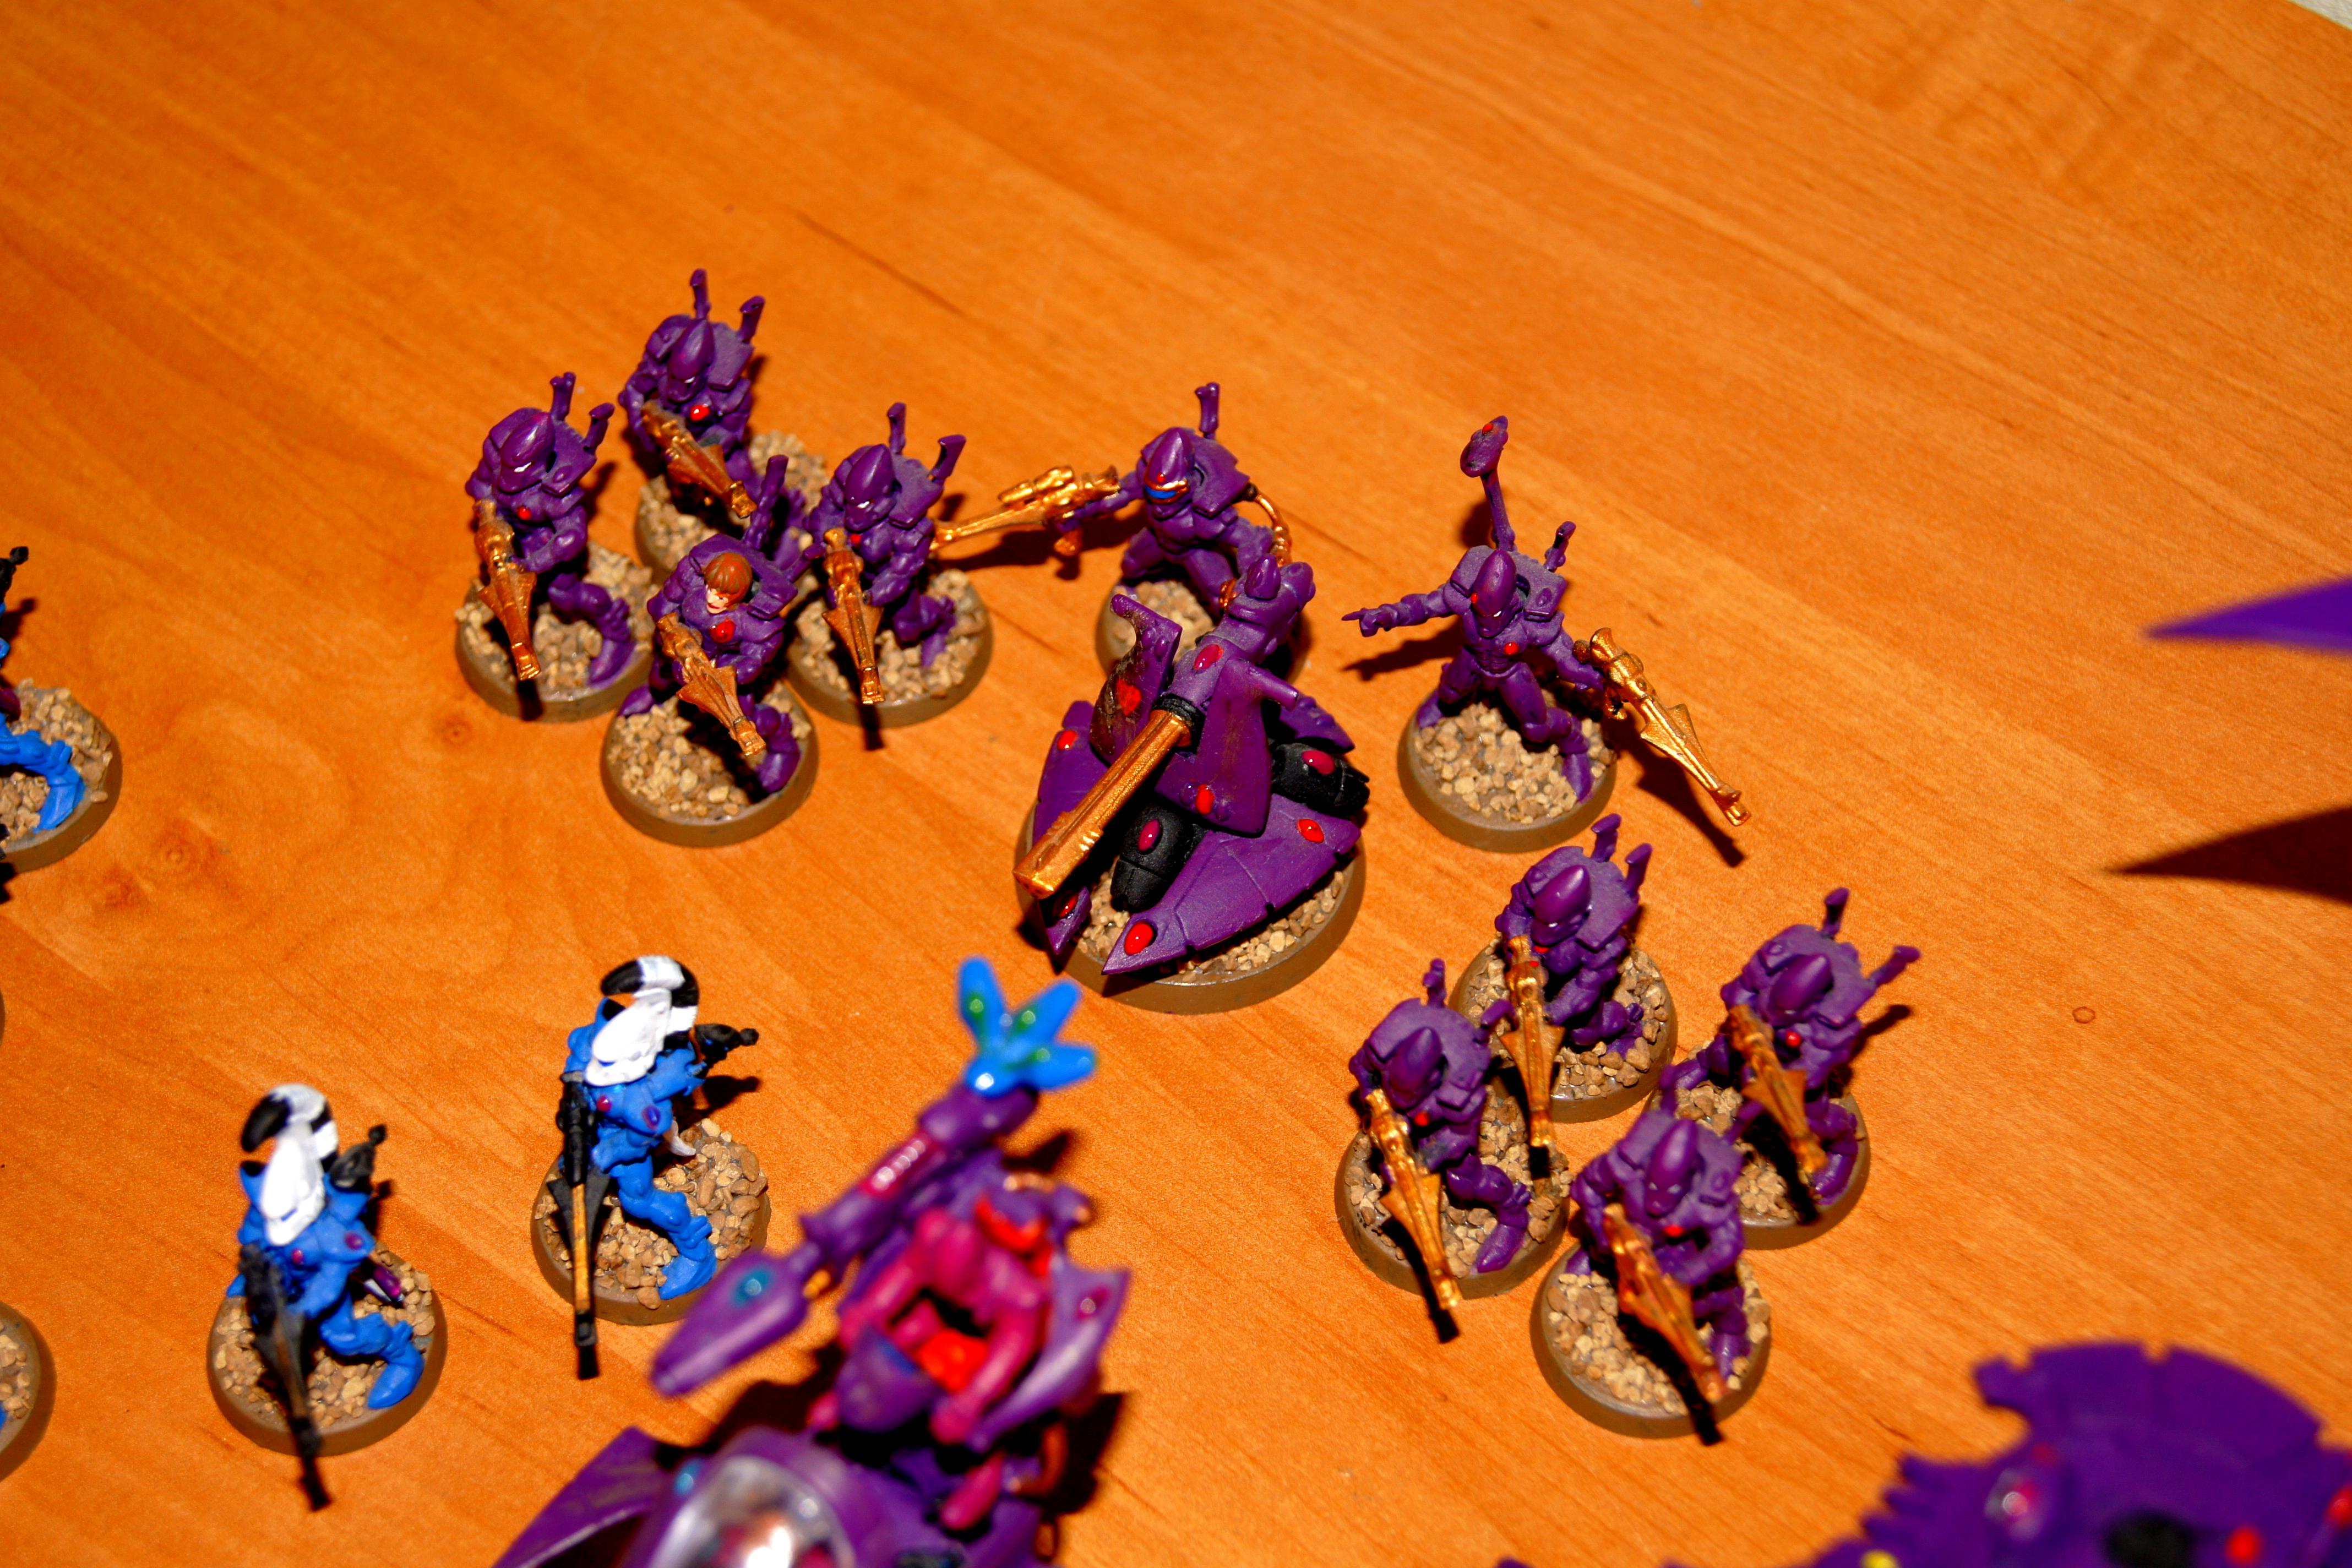 Army, Autarch, Avatar, Conversion, Dire Avenders, Dire Avengers, Eldar, Farseer, Fire Dragon, Fire Prism, Guardians, Gyrinx, High Elves, Howling Banshees, Imperial Abuse, Jetbike, Nightwing, Razorwing, Support Weapon, Vyper, War Walker, Warlock, Warp Spiders, Wave Serpent, Wraithlord